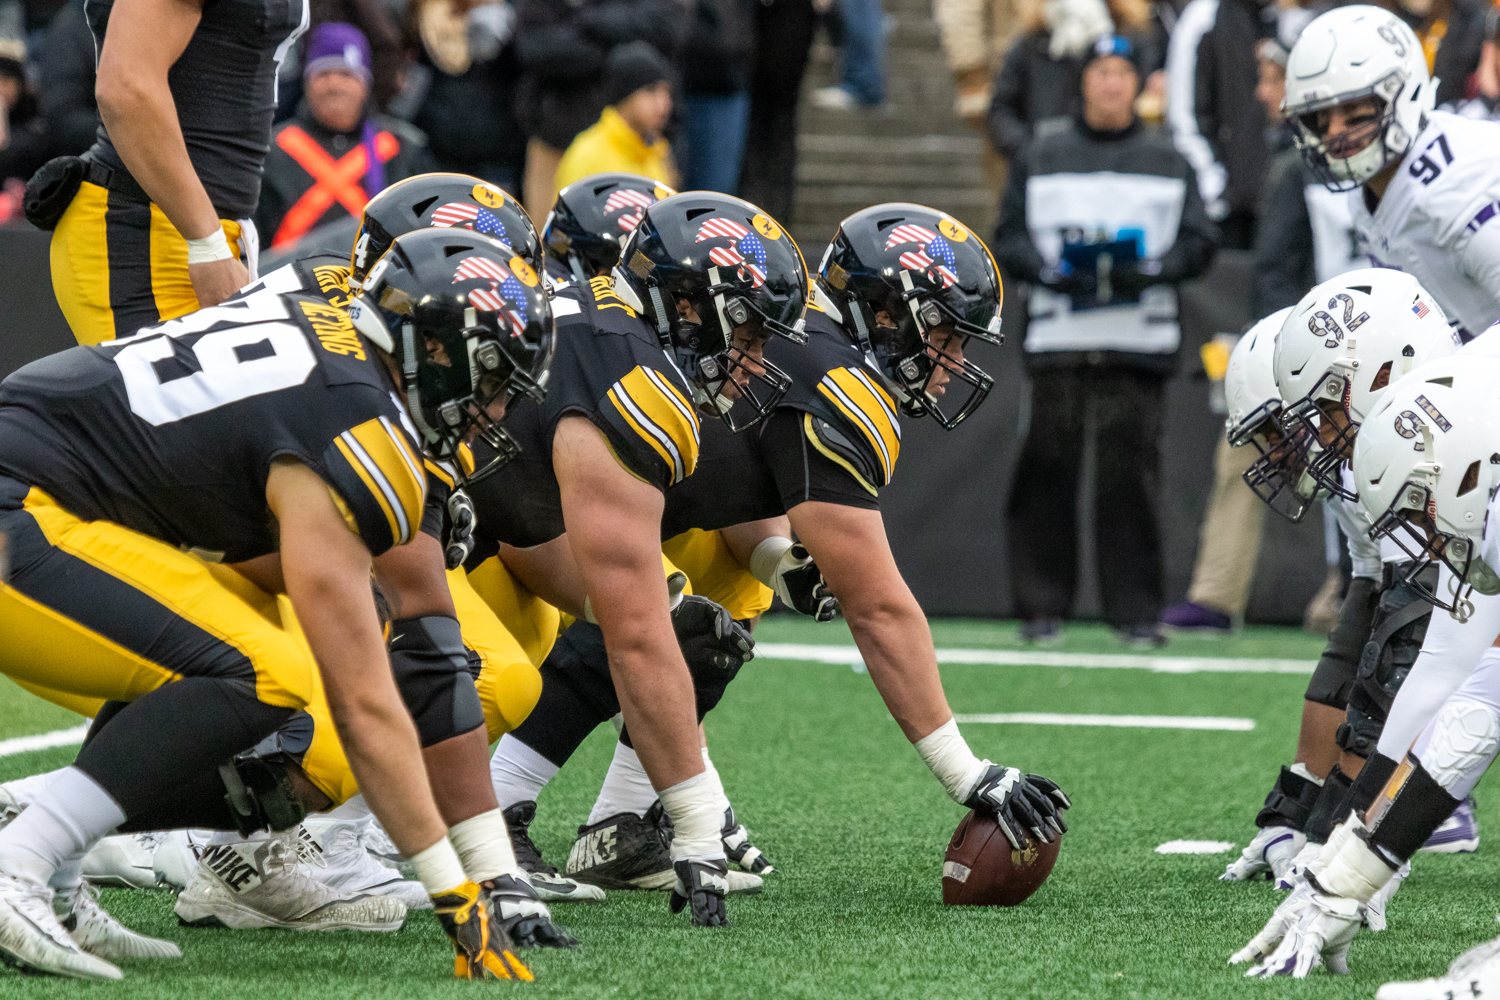 The+Iowa+offensive+line+squares+up+against+the+Northwestern+defense+during+a+game+against+Northwestern+University+on+Saturday%2C+Nov.+10%2C+2018+at+Kinnick+Stadium+in+Iowa+City.+The+Wildcats+defeated+the+Hawkeyes+14-10.+%28David+Harmantas%2FThe+Daily+Iowan%29